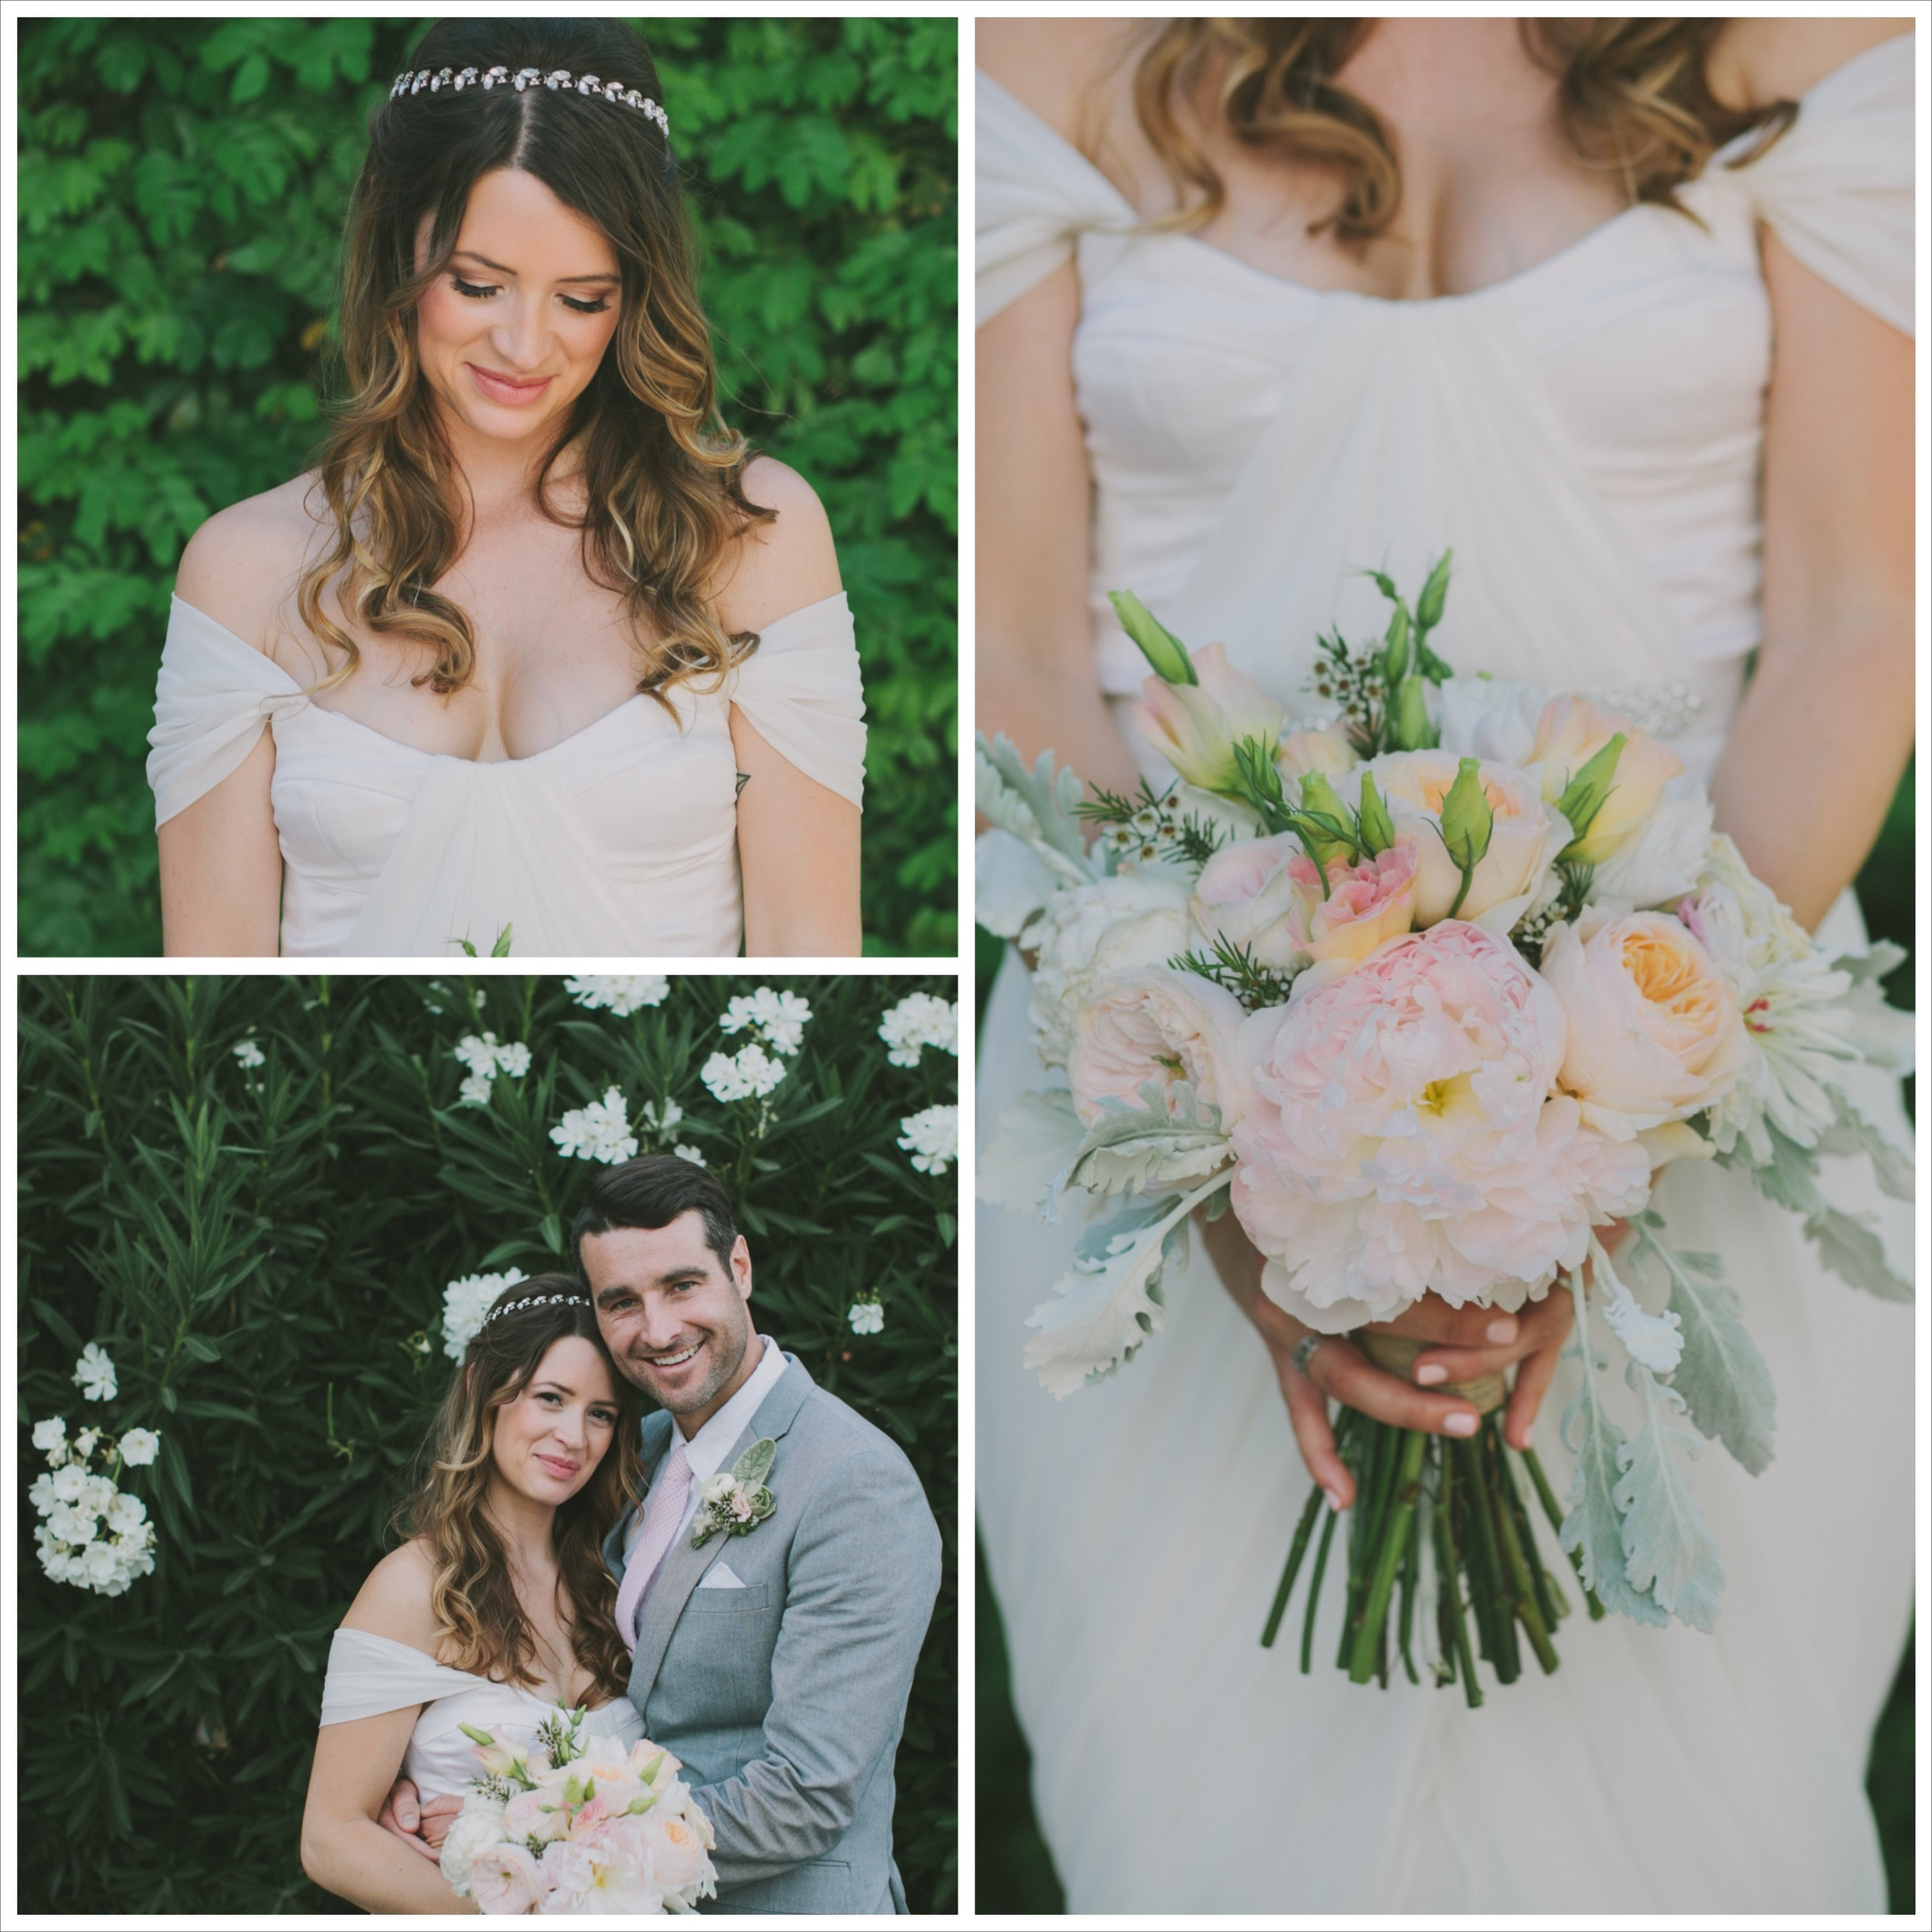 Peach and pink bouquet, bride and groom posing